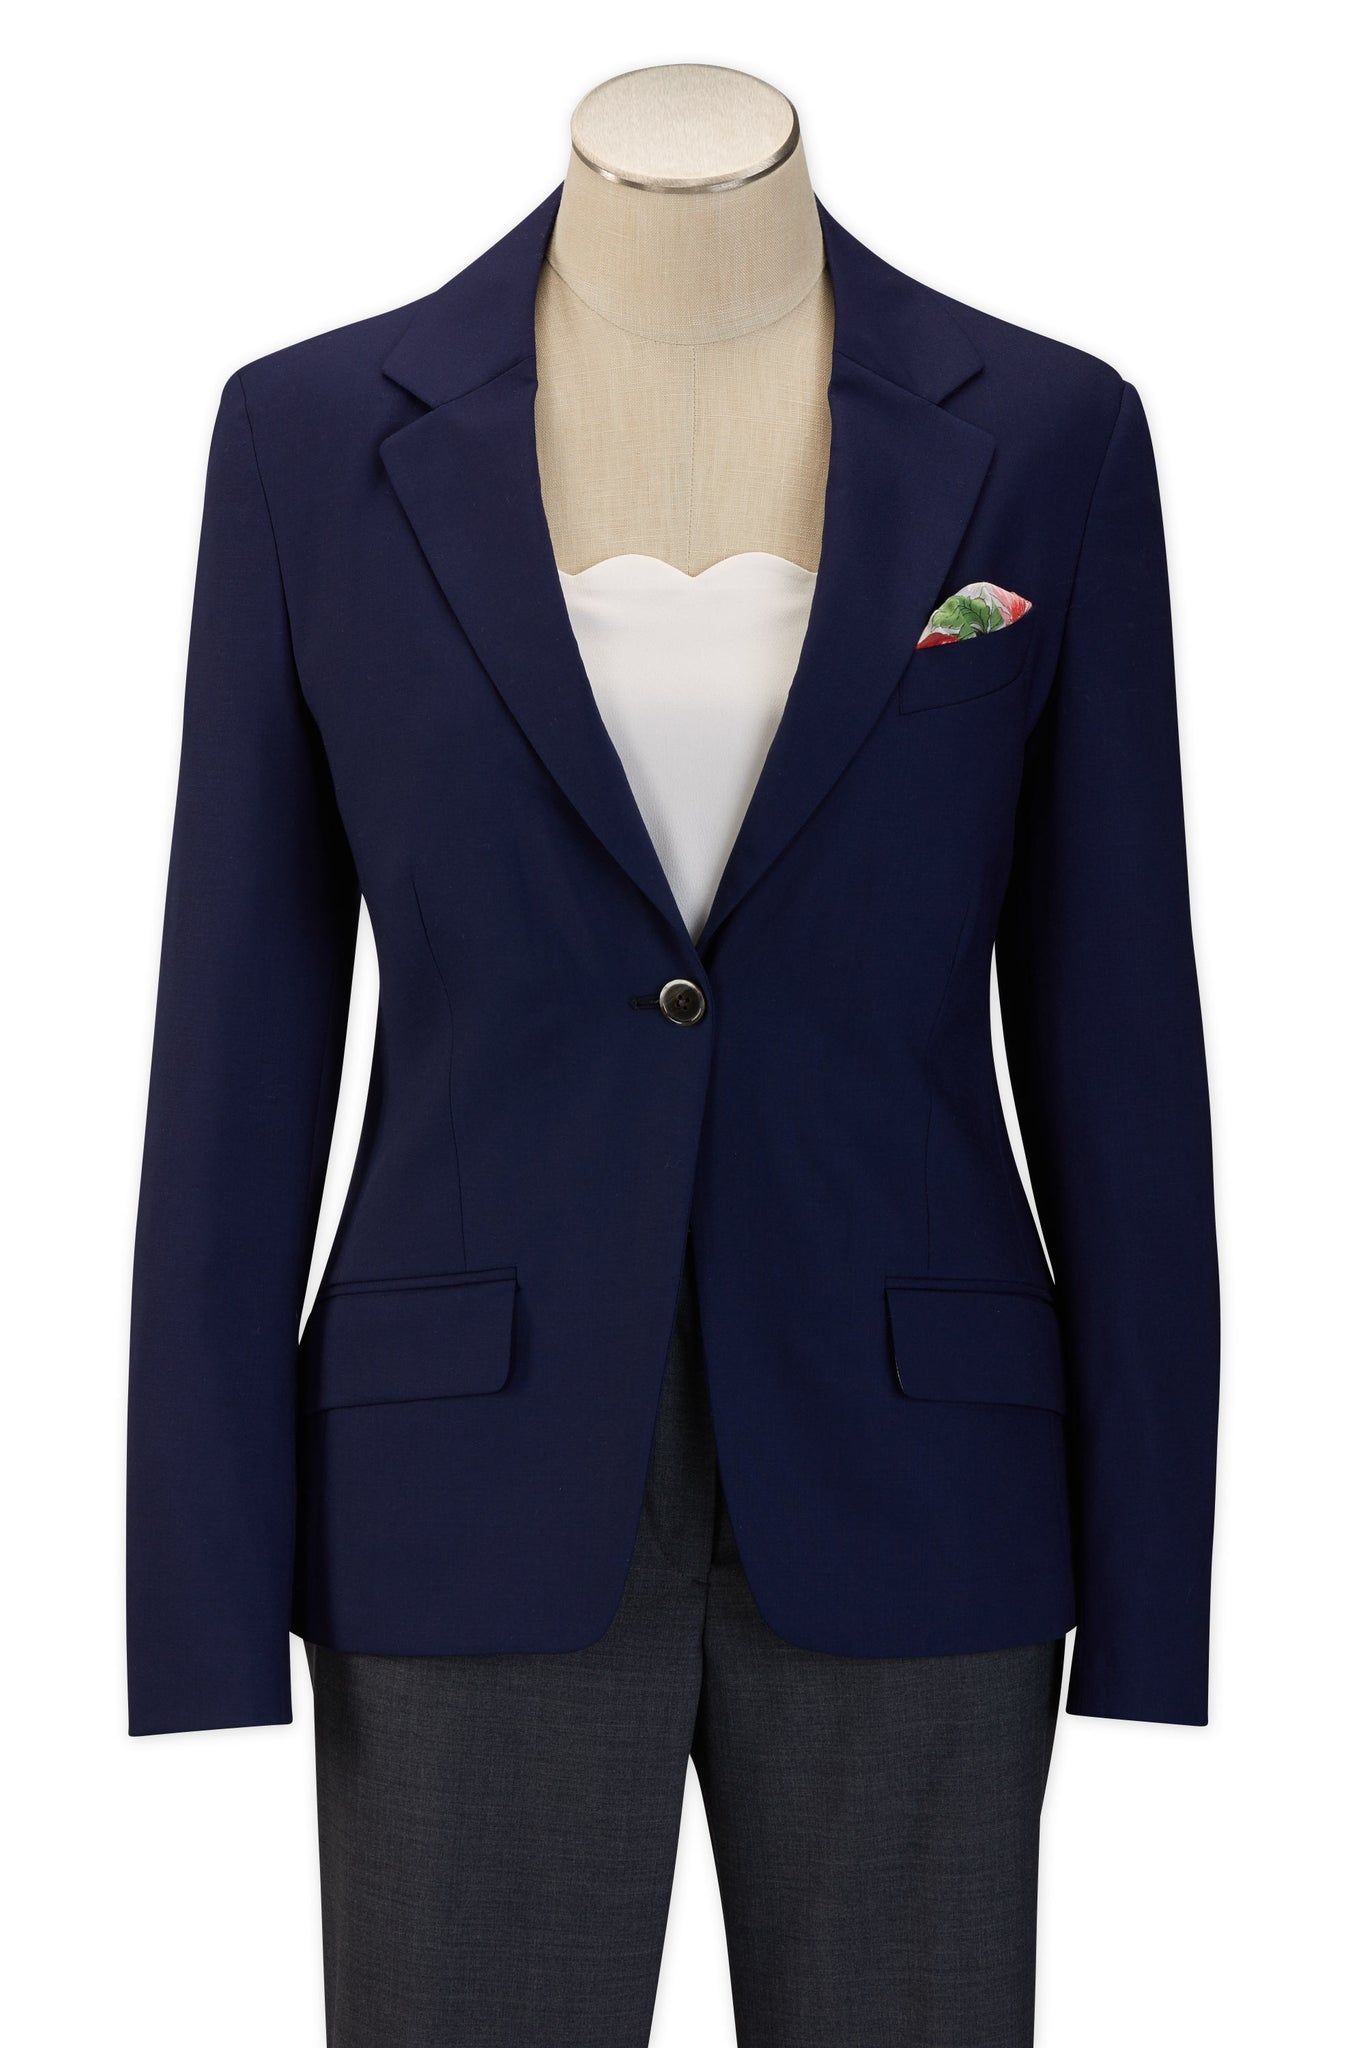 Women's Blue H-Tech Blazer -  Hardwick.com